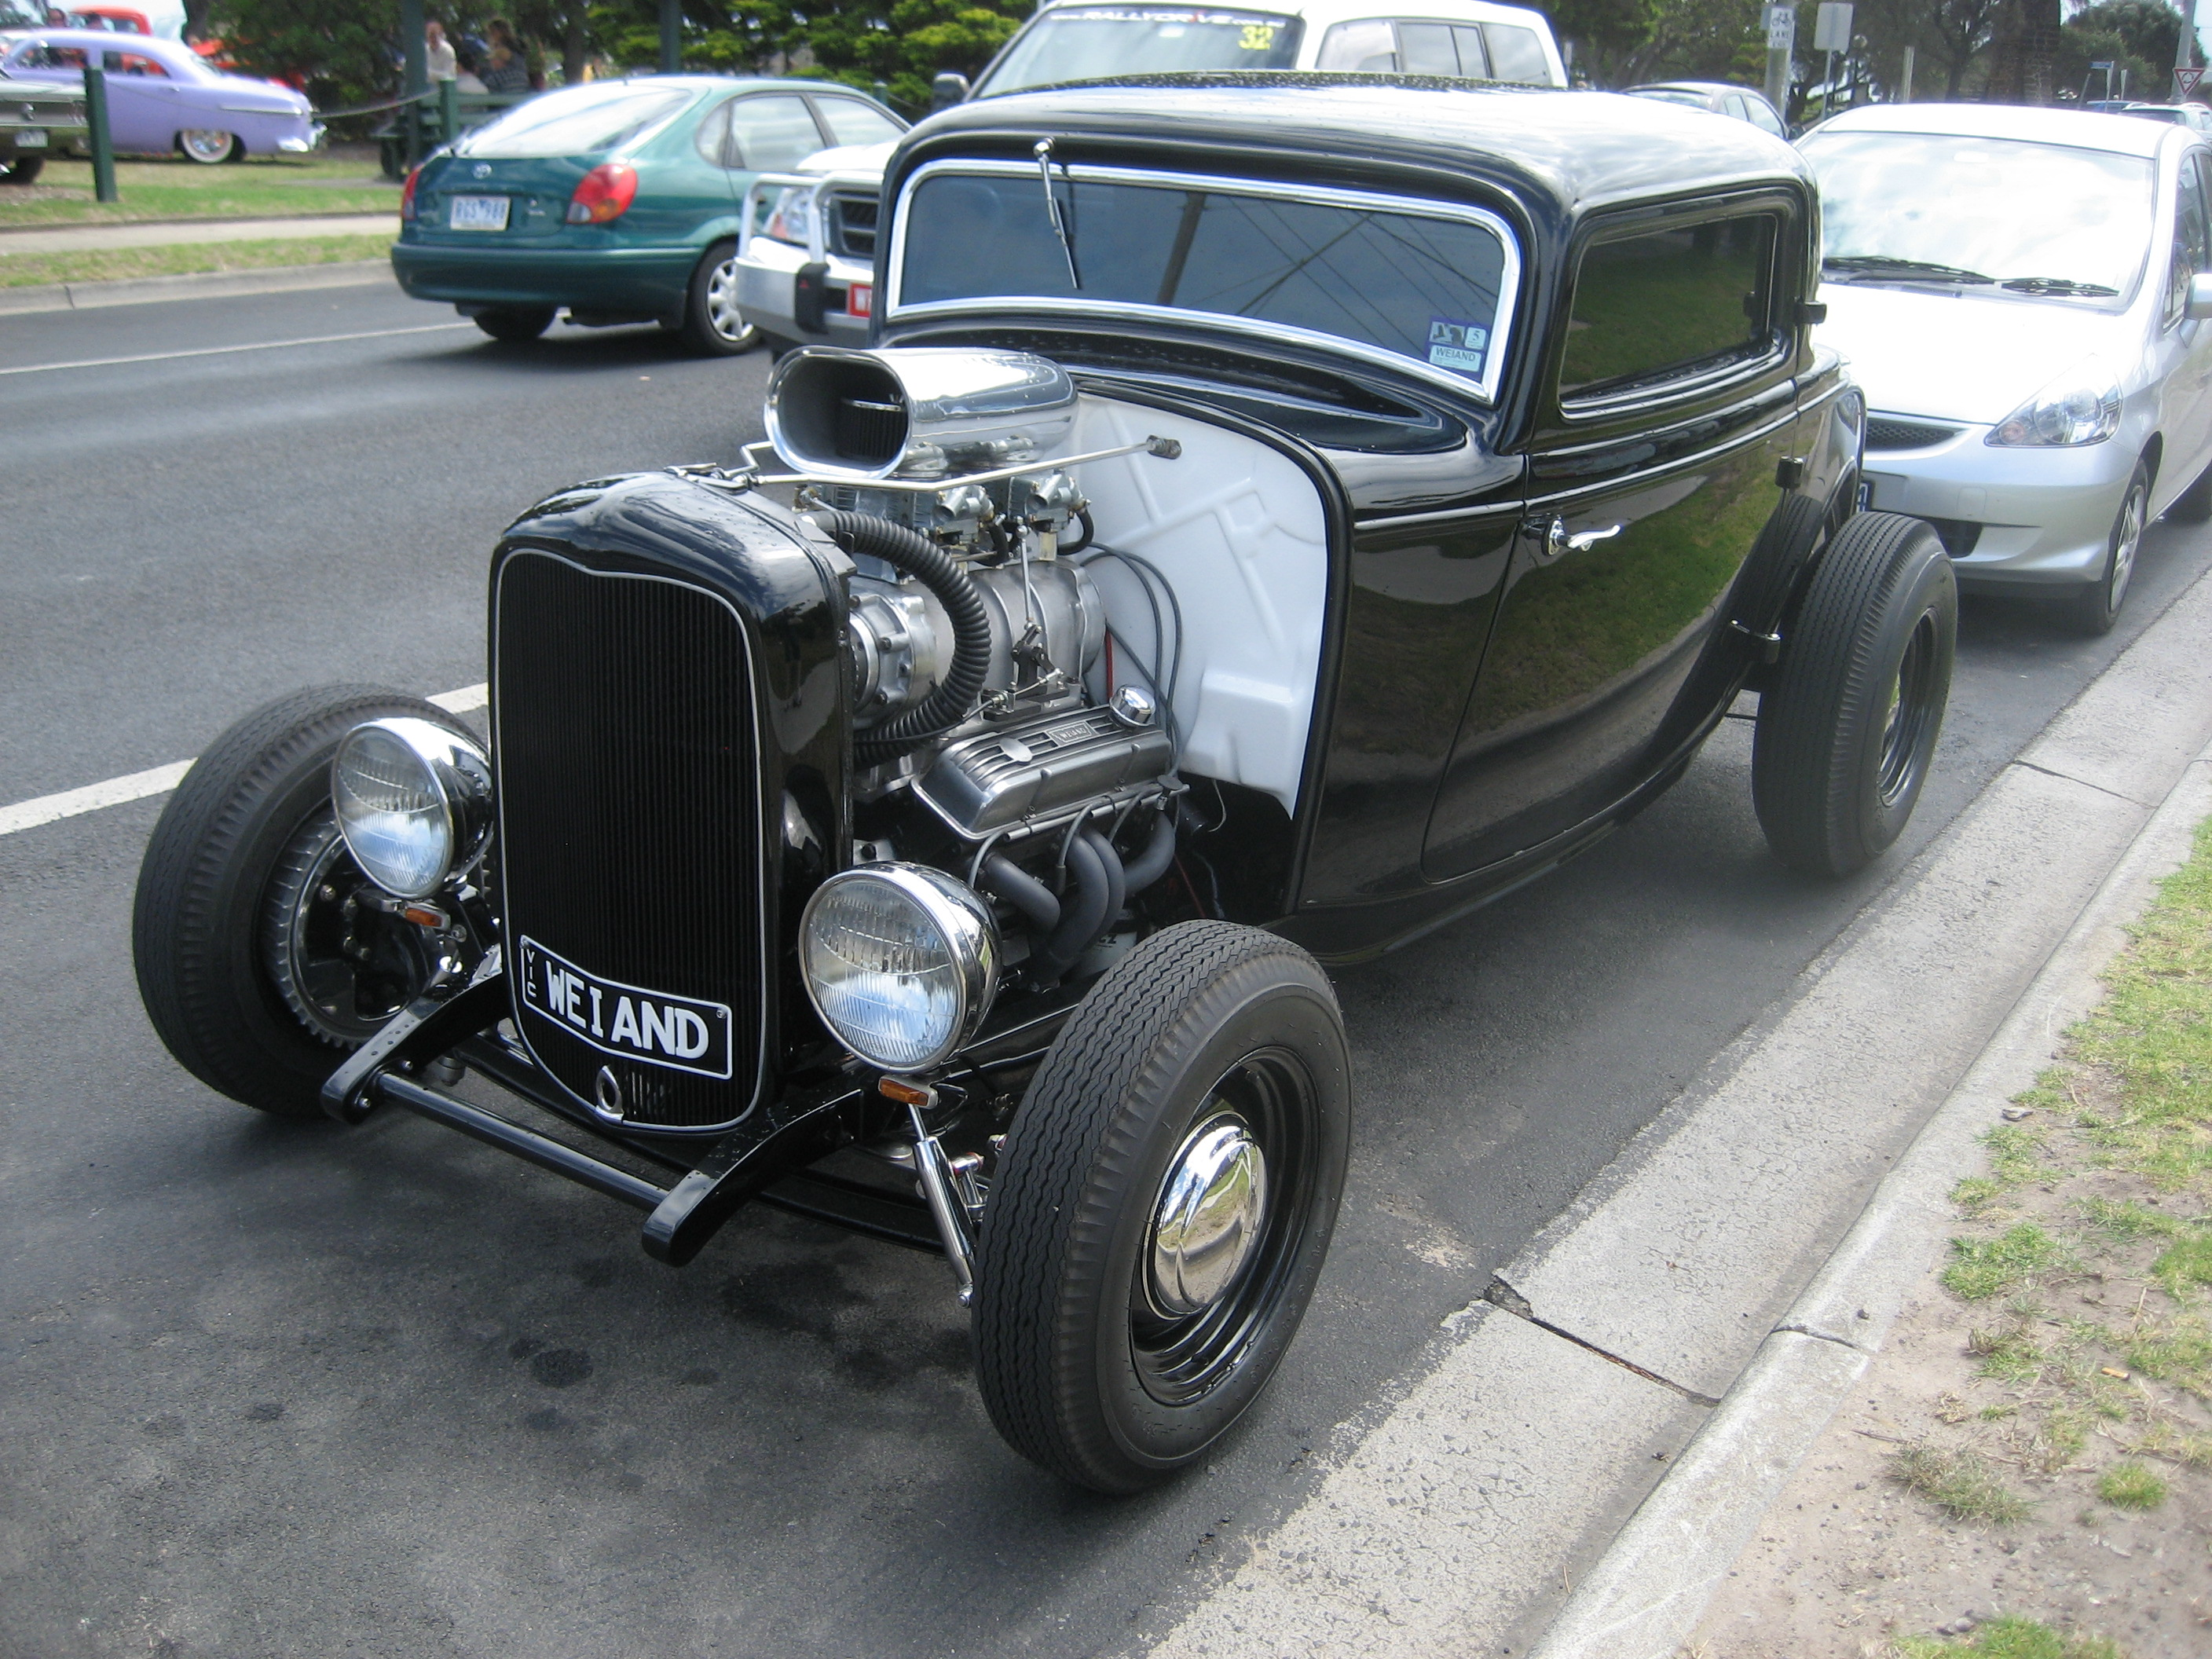 File:1932 Ford 3 Window Coupe Hot Rod (7).jpg - Wikimedia Commons